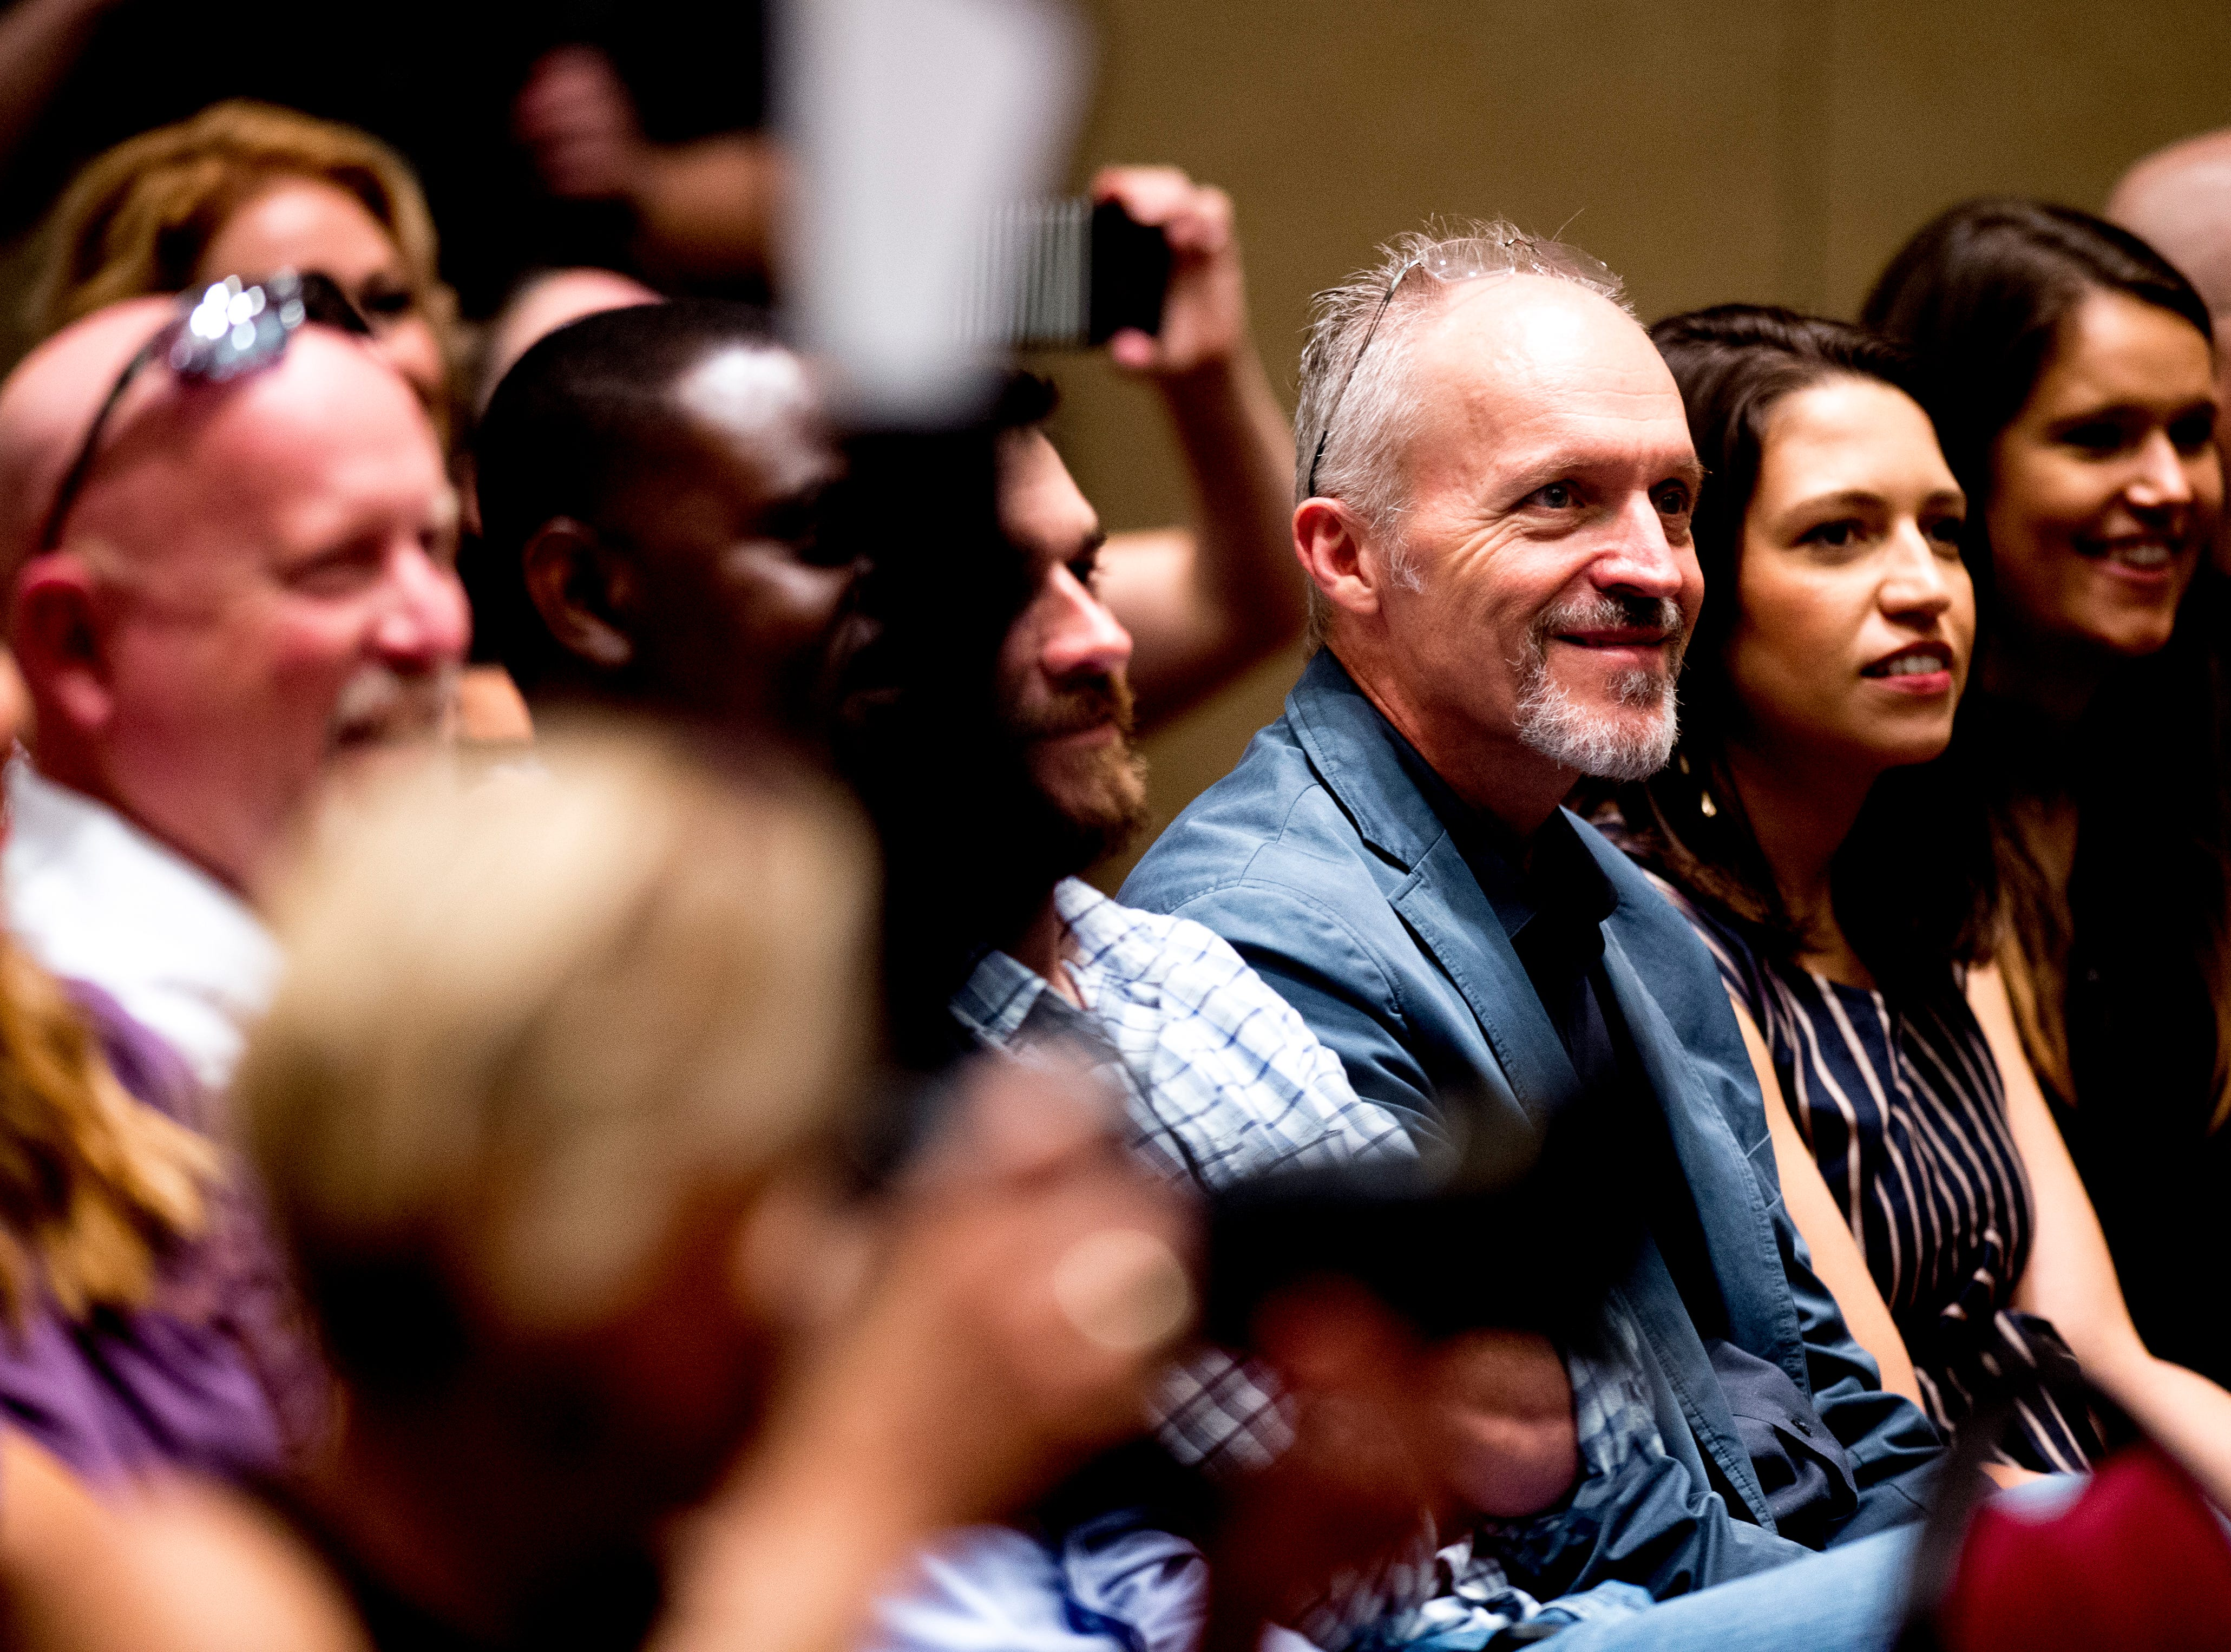 Attendees listen during an announcement ceremony for Ole Red Gatlinburg in Gatlinburg, Tennessee on Tuesday, September 18, 2018. The 13,500 square-foot entertainment venue with a two-story bar, restaurant and performance space with space for 325 patrons is slated to open spring 2019.